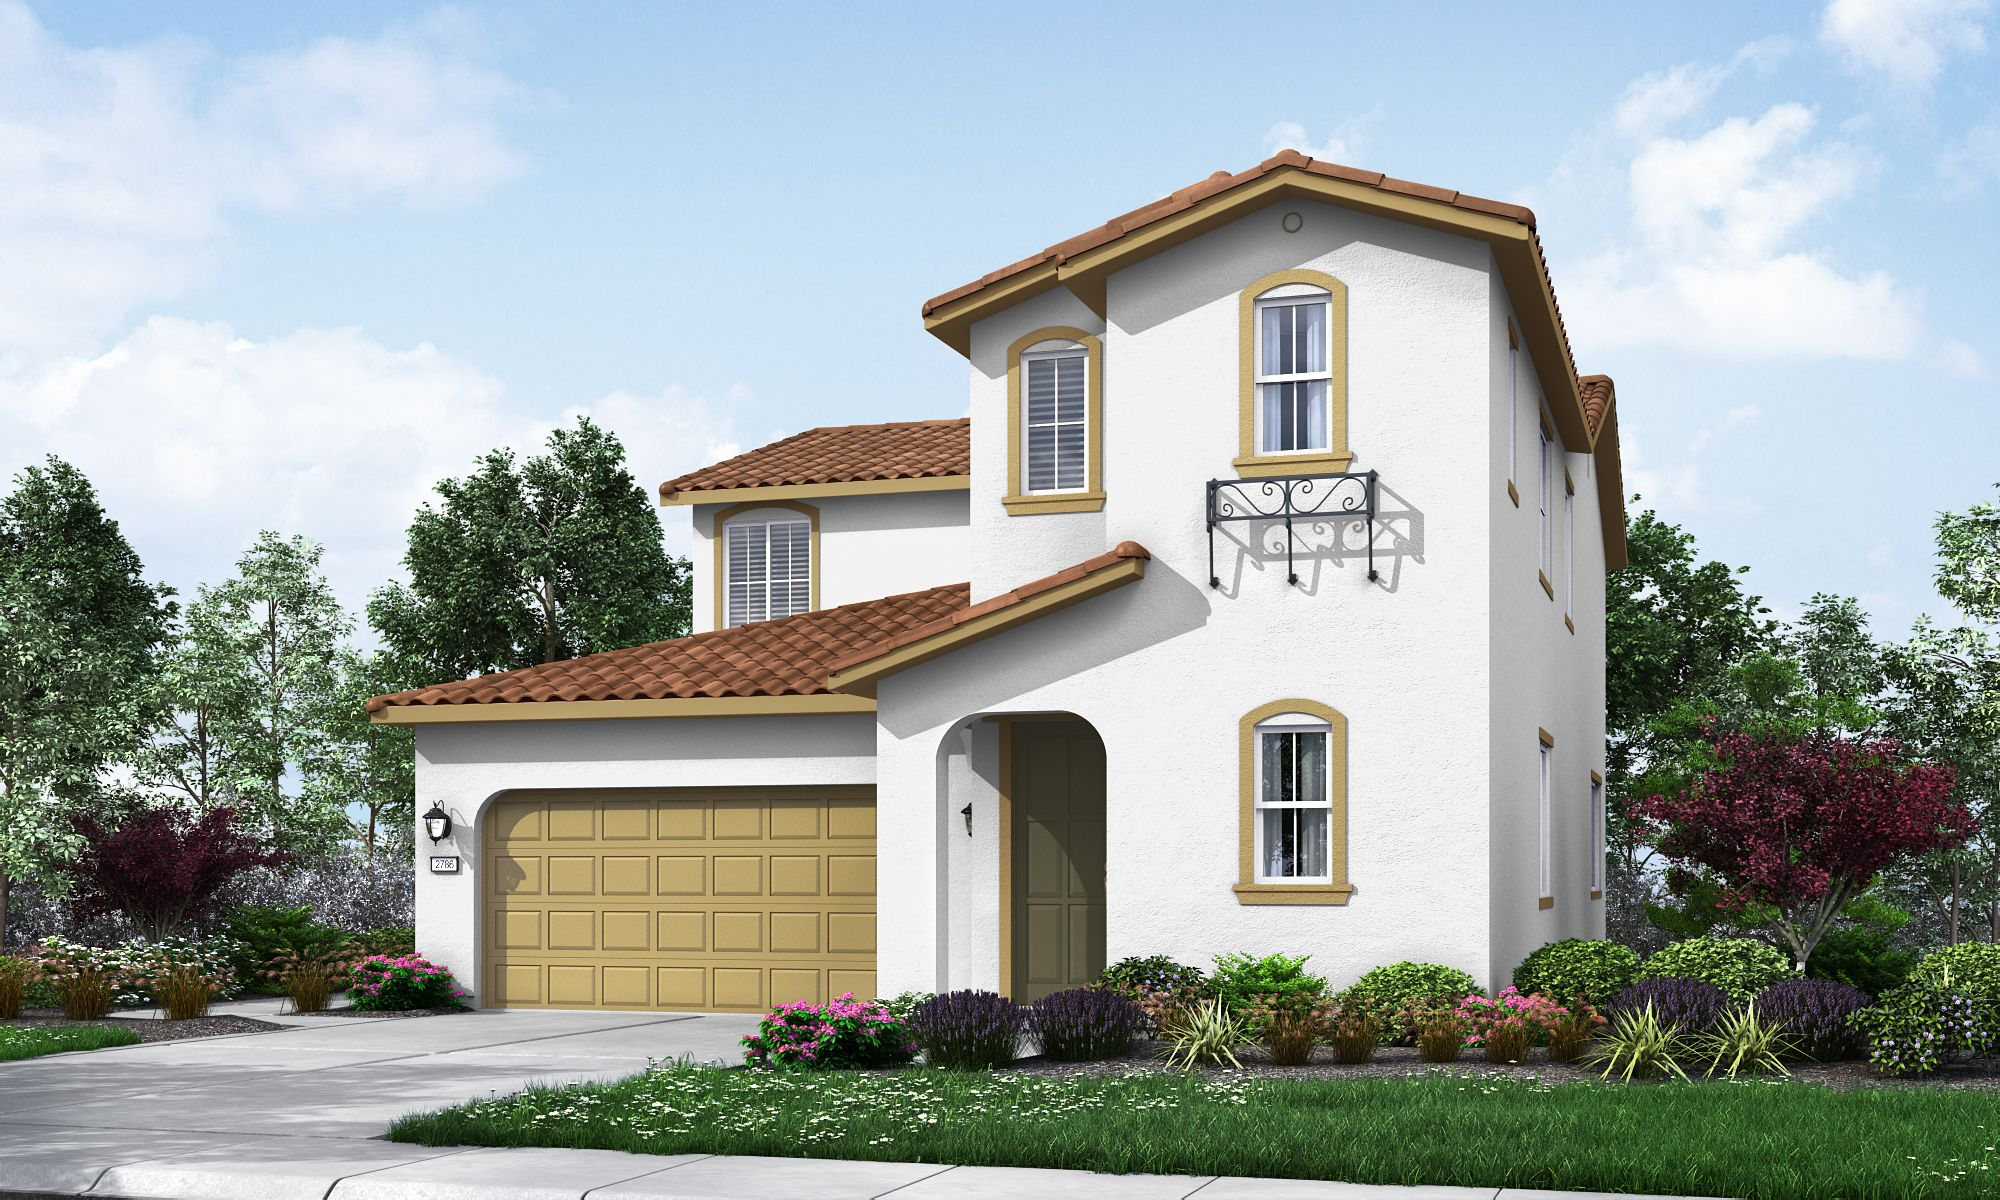 The rockport plan is a great two story home that provides 2785 square feet four bedrooms including dual master